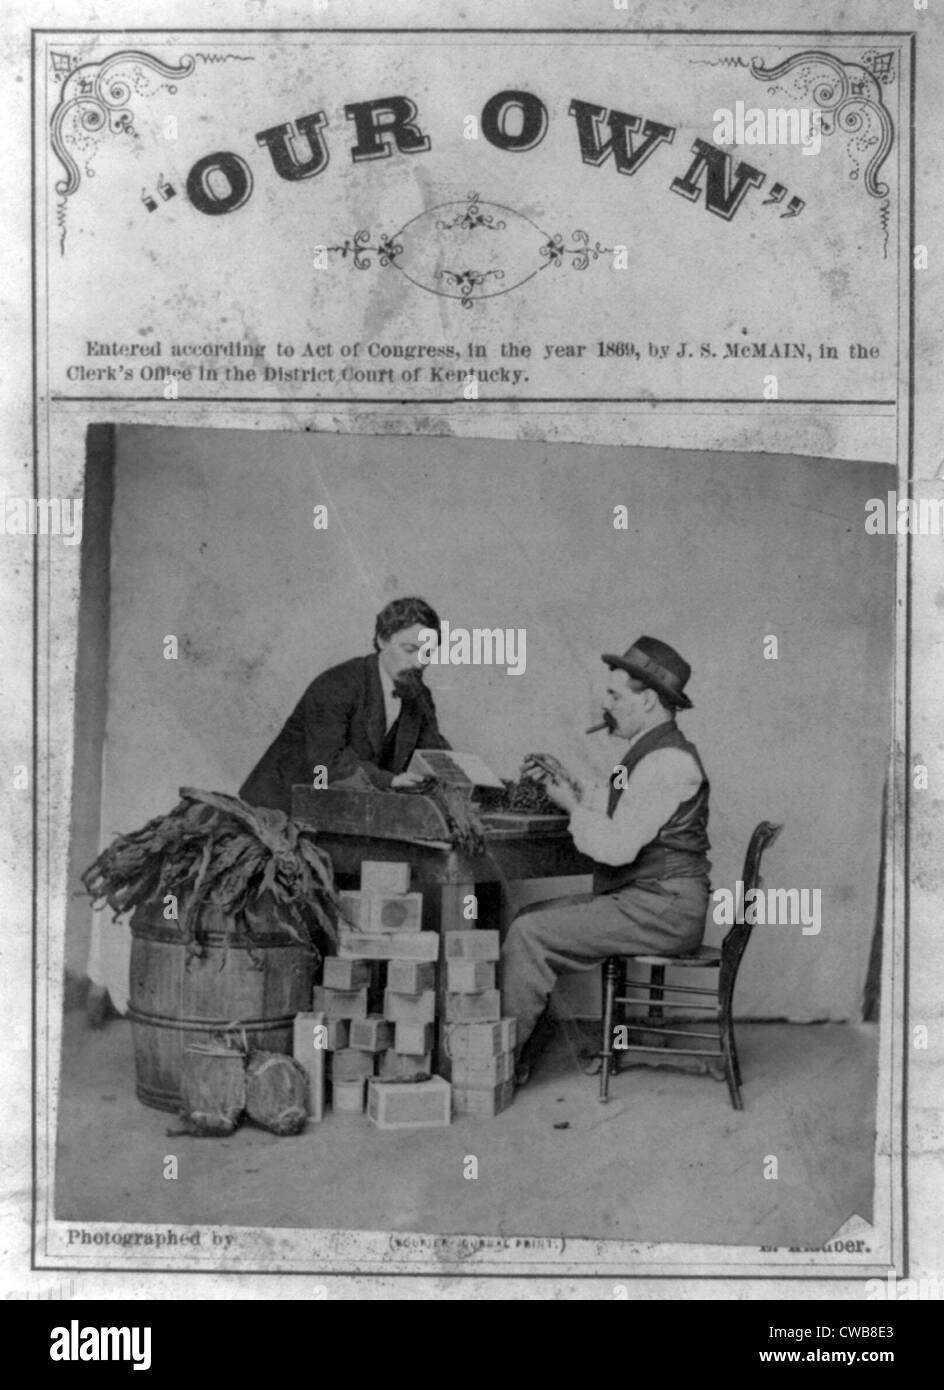 Cigar makers. Two cigarmakers pictured with toabacco leaves and cigar boxes. 1869 - Stock Image